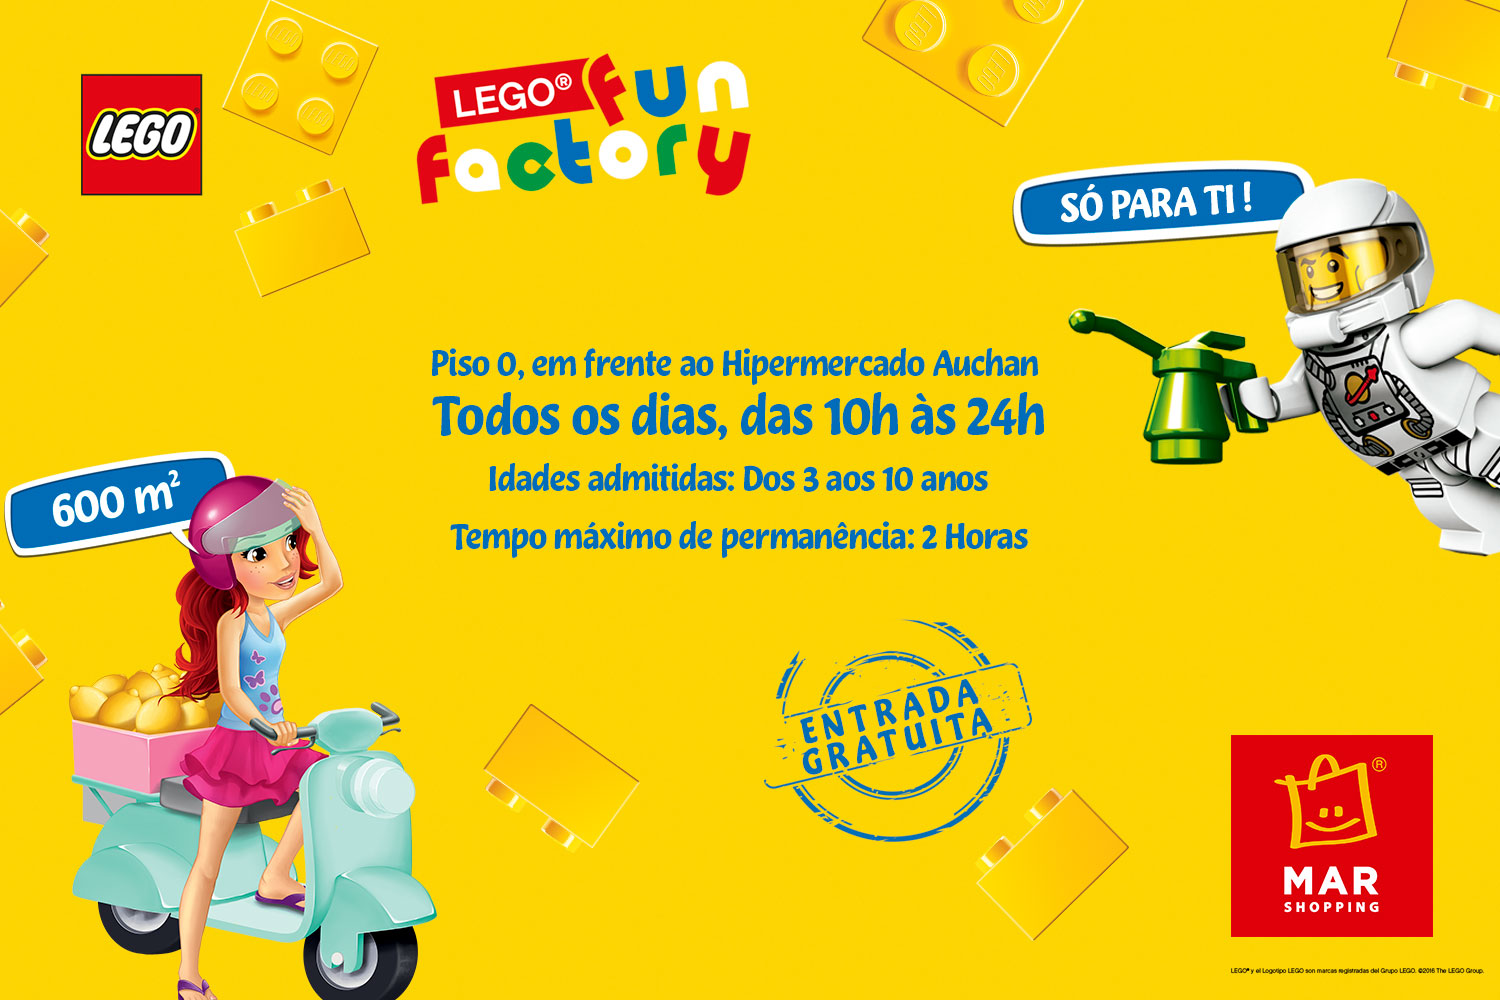 lego fun factory for families